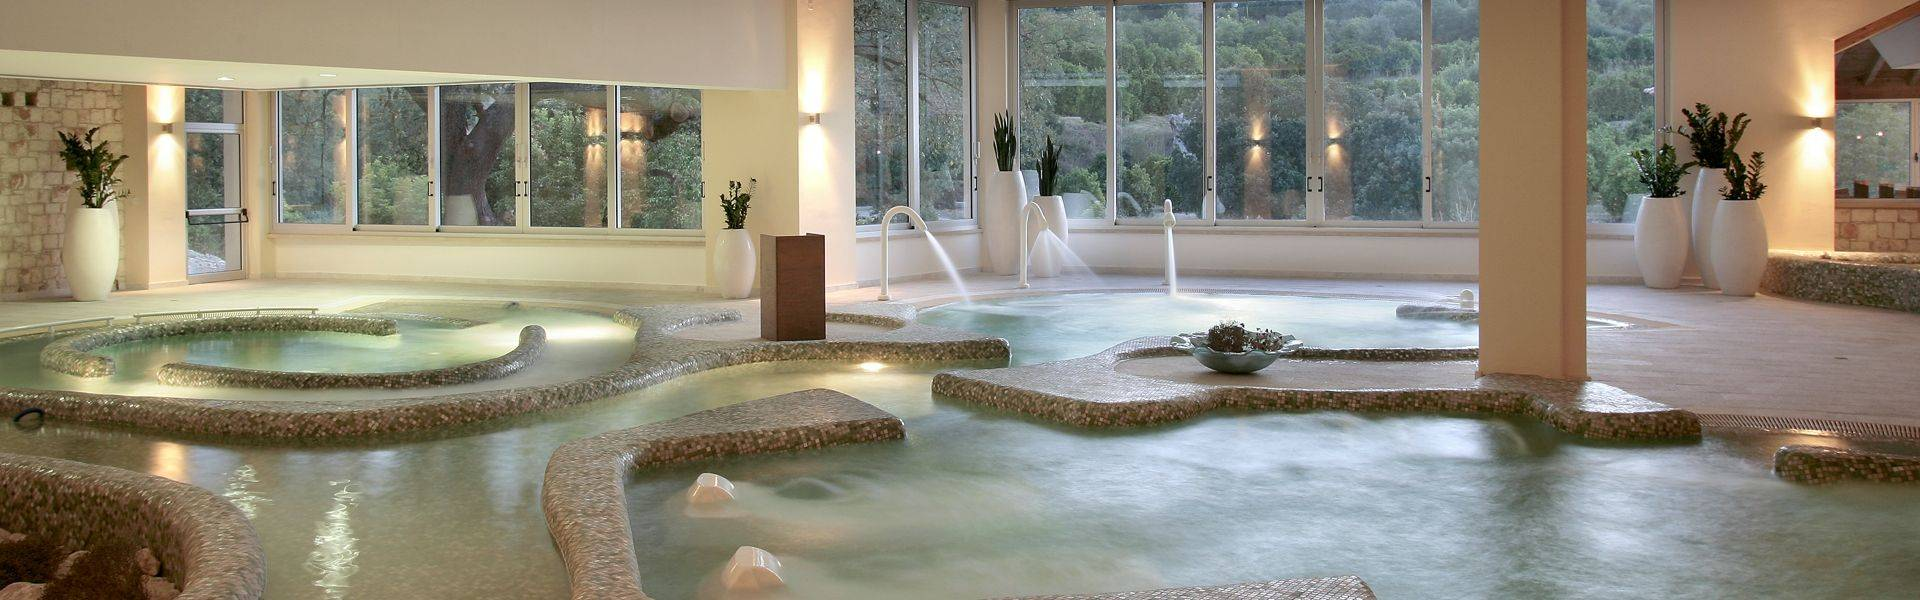 Ayii-Anargyri-indoor-pools.JPG